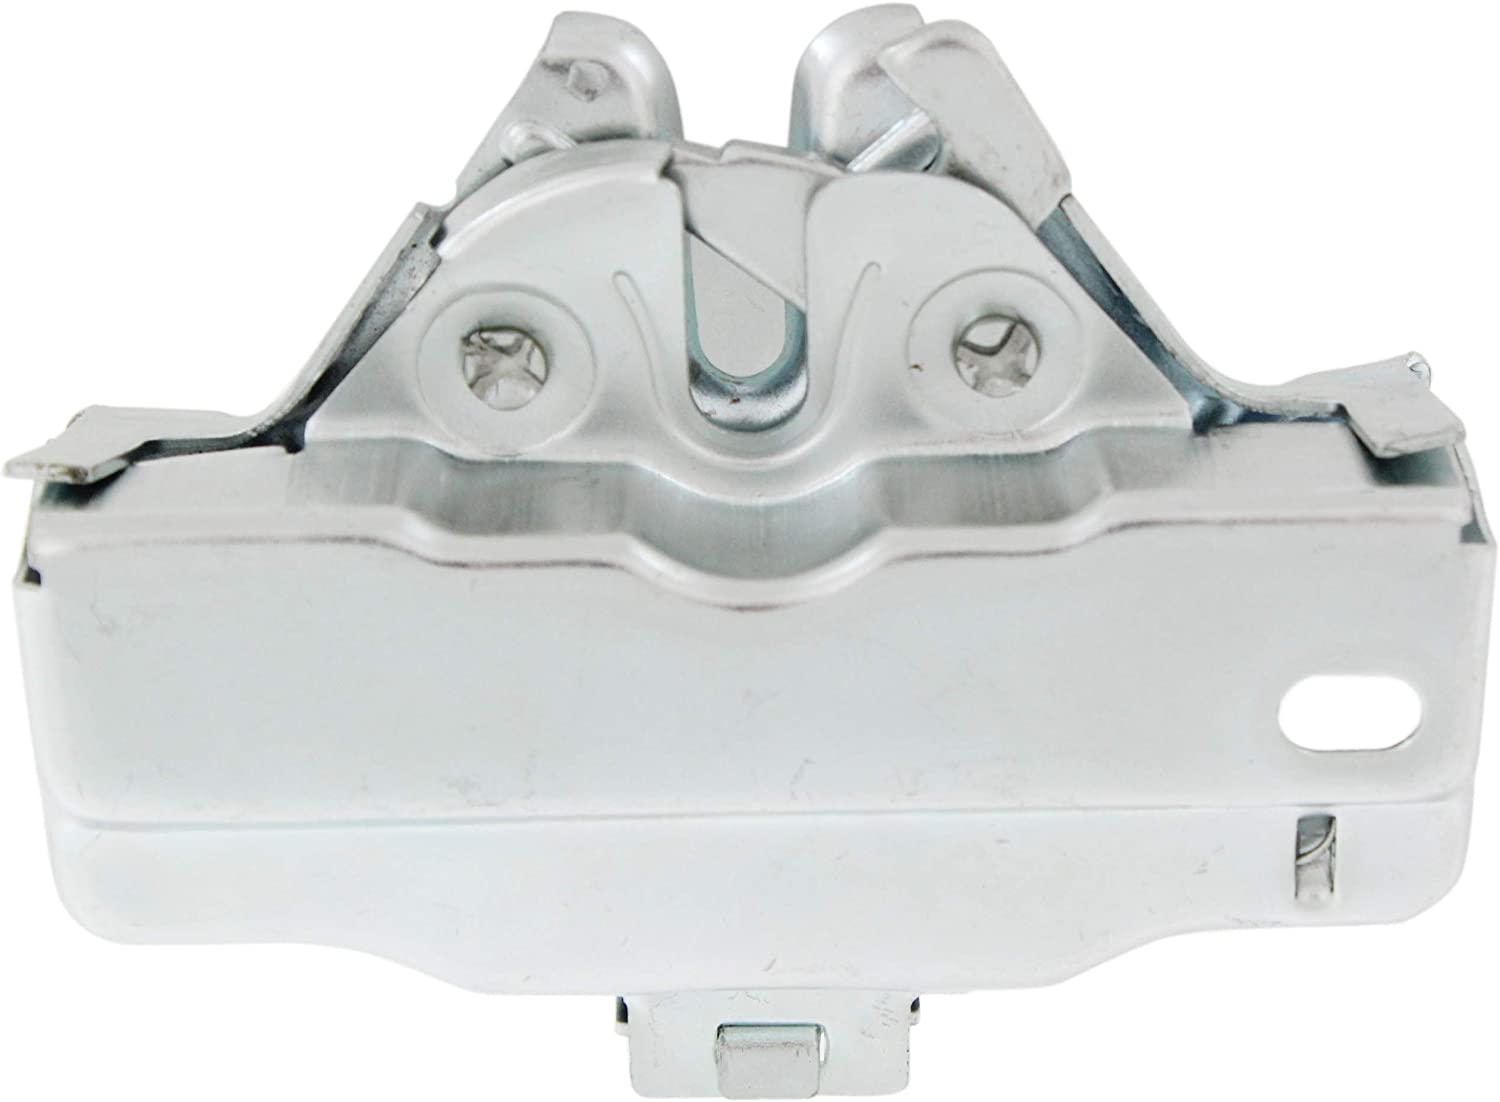 Hood Latch Compatible with Toyota Camry 2007-2011 Assembly with Theft Deterrent USA Built